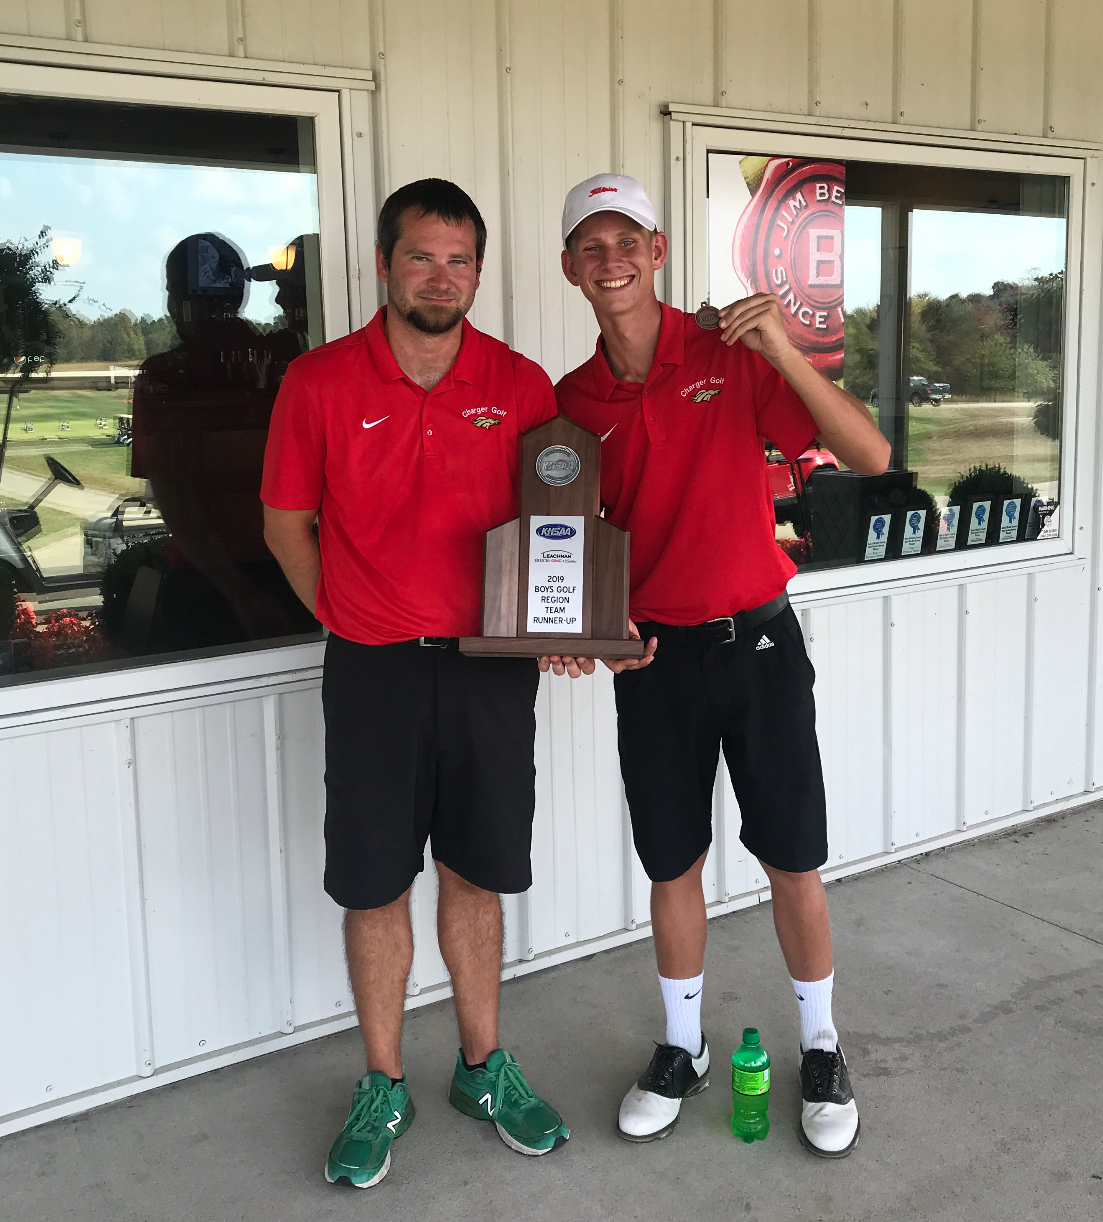 """Coach Kyle Downs and senior Aiden Robison holding trophy of second place from regionals. The boys golf team placed second at regionals on Oct. 1, against 12 other teams, and Robison and junior Thomas Bryan earned a spot in the state tournament. """"Thomas and I are going to get prepared for state by playing a ton. We want to show the state that Bullitt East has some great golfers,"""" said Robison."""